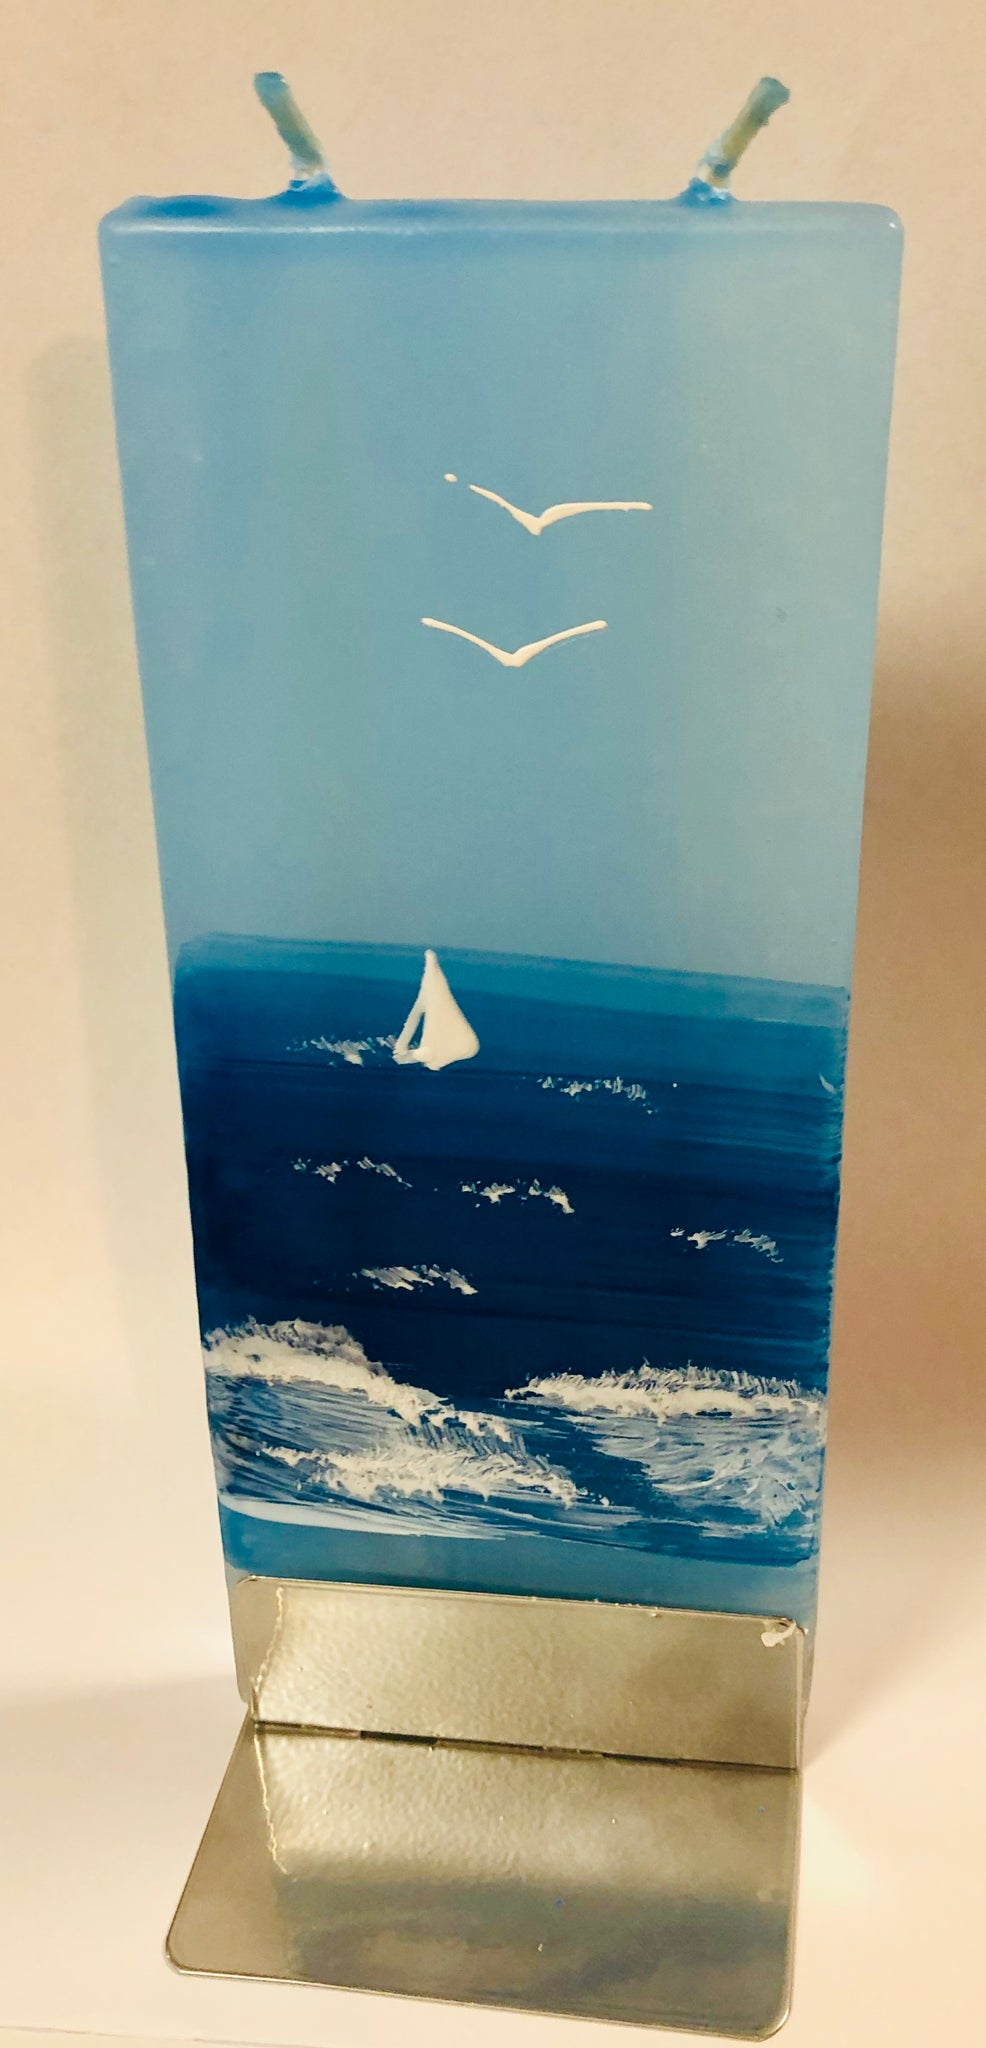 Sailing Boat Flatyz Handmade Decorative Flat Candles